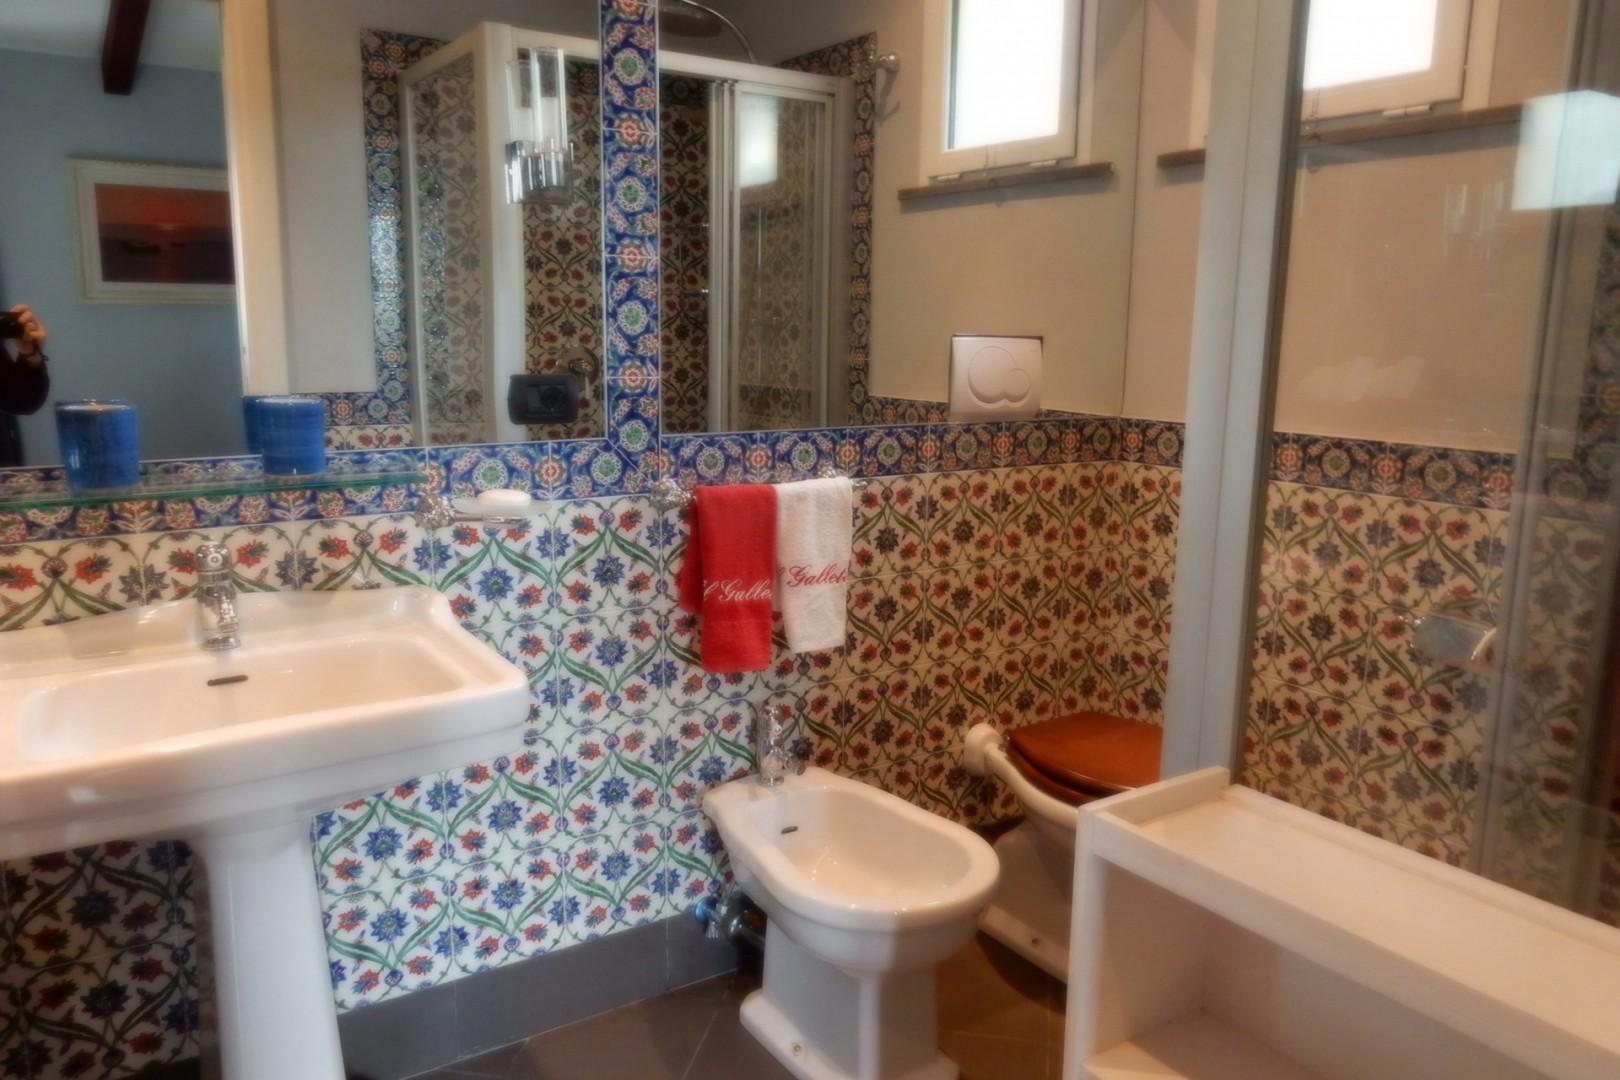 Bathroom is directly across the hall from bedroom 3. Large shower, sink, bidet and toilet.